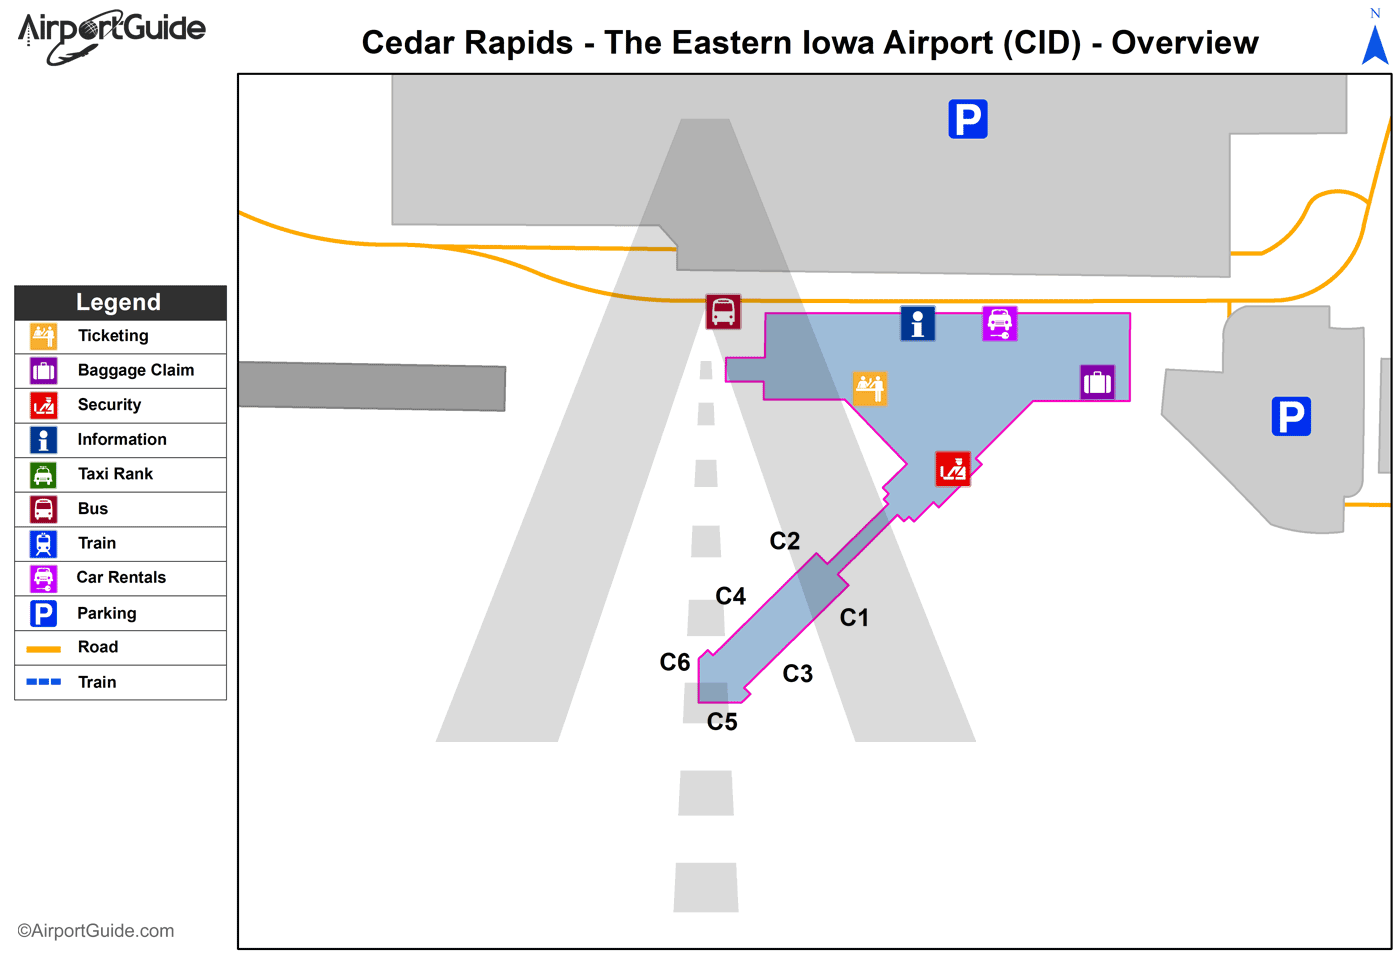 Cedar Rapids - The Eastern Iowa (CID) Airport Terminal Map - Overview